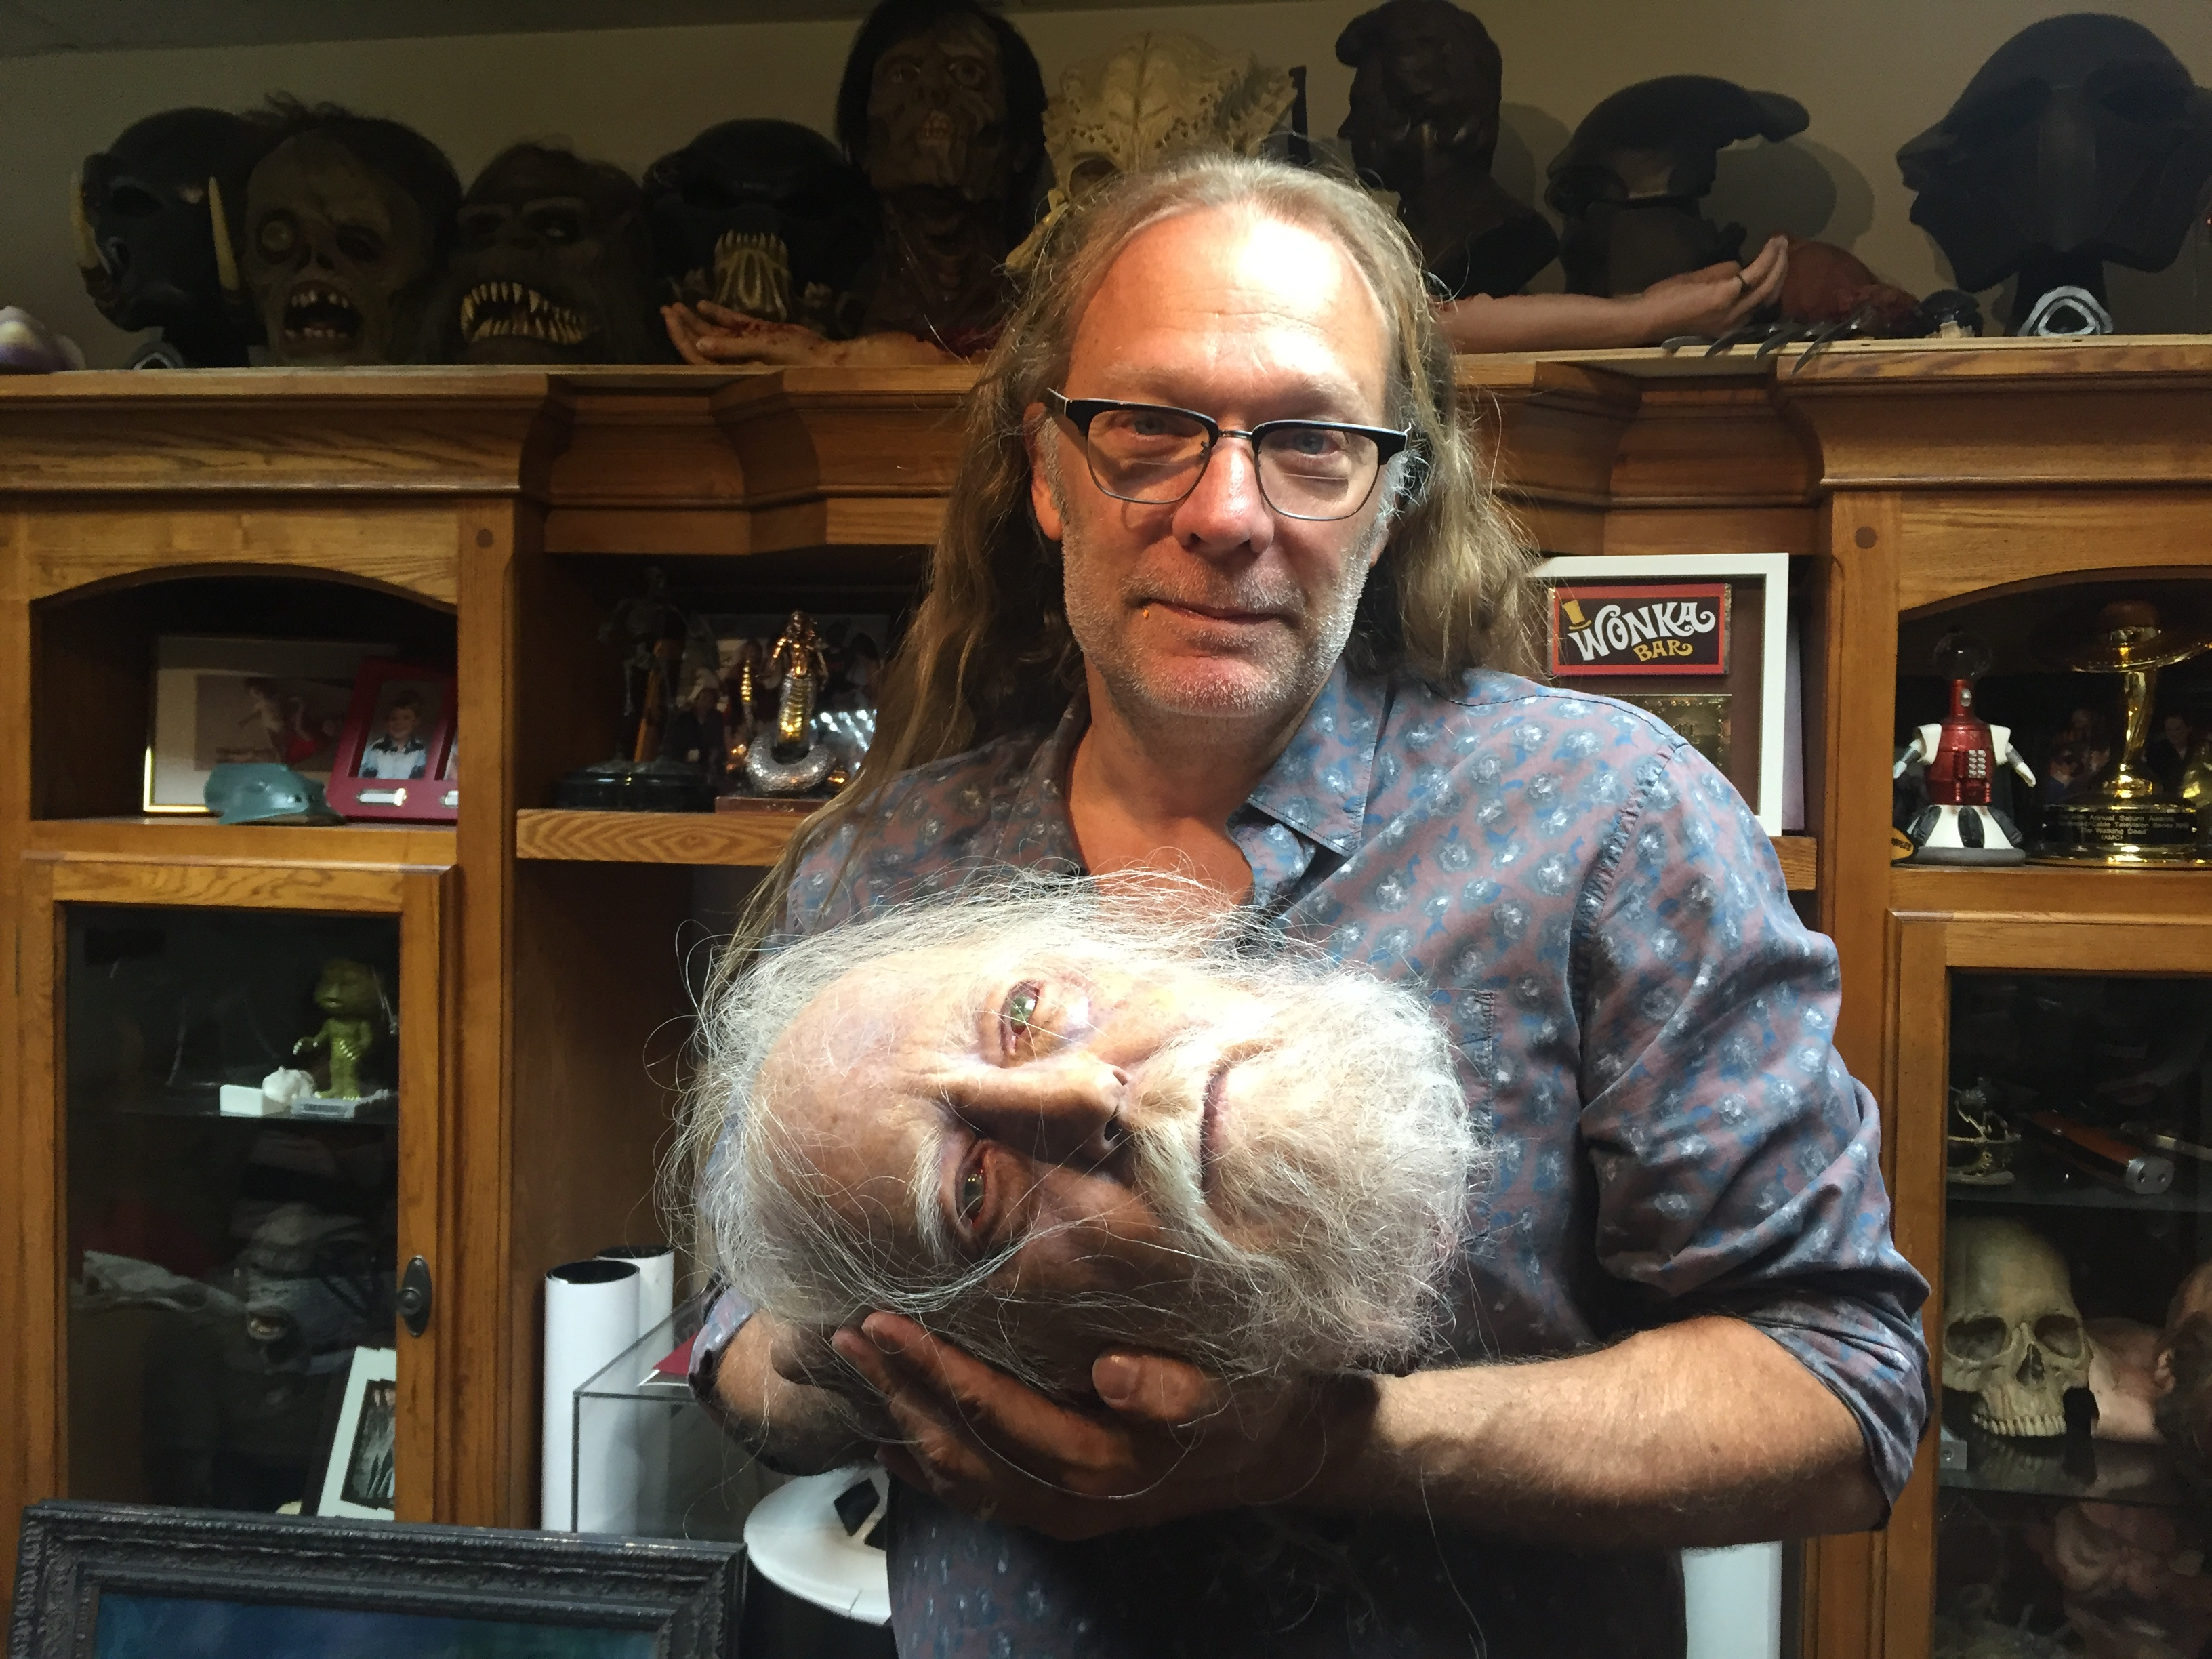 Special effects artist Greg Nicotero cradles the severed head of Hershel Greene, a character from AMC series 'The Walking Dead', as he poses for a photo at his studio KNB EFX in Chatsworth, California on June 8, 2016.  He is the God of Gore, the Sultan of Splatter, the Emperor of Entrails -- and the brains behind some of the most iconic blood and guts set-pieces in film history. If you've seen something in a violent movie that made the blood drain from your face, there's a good chance that Oscar-winning Greg Nicotero provided the special effects.  / AFP PHOTO / Frankie TAGGART